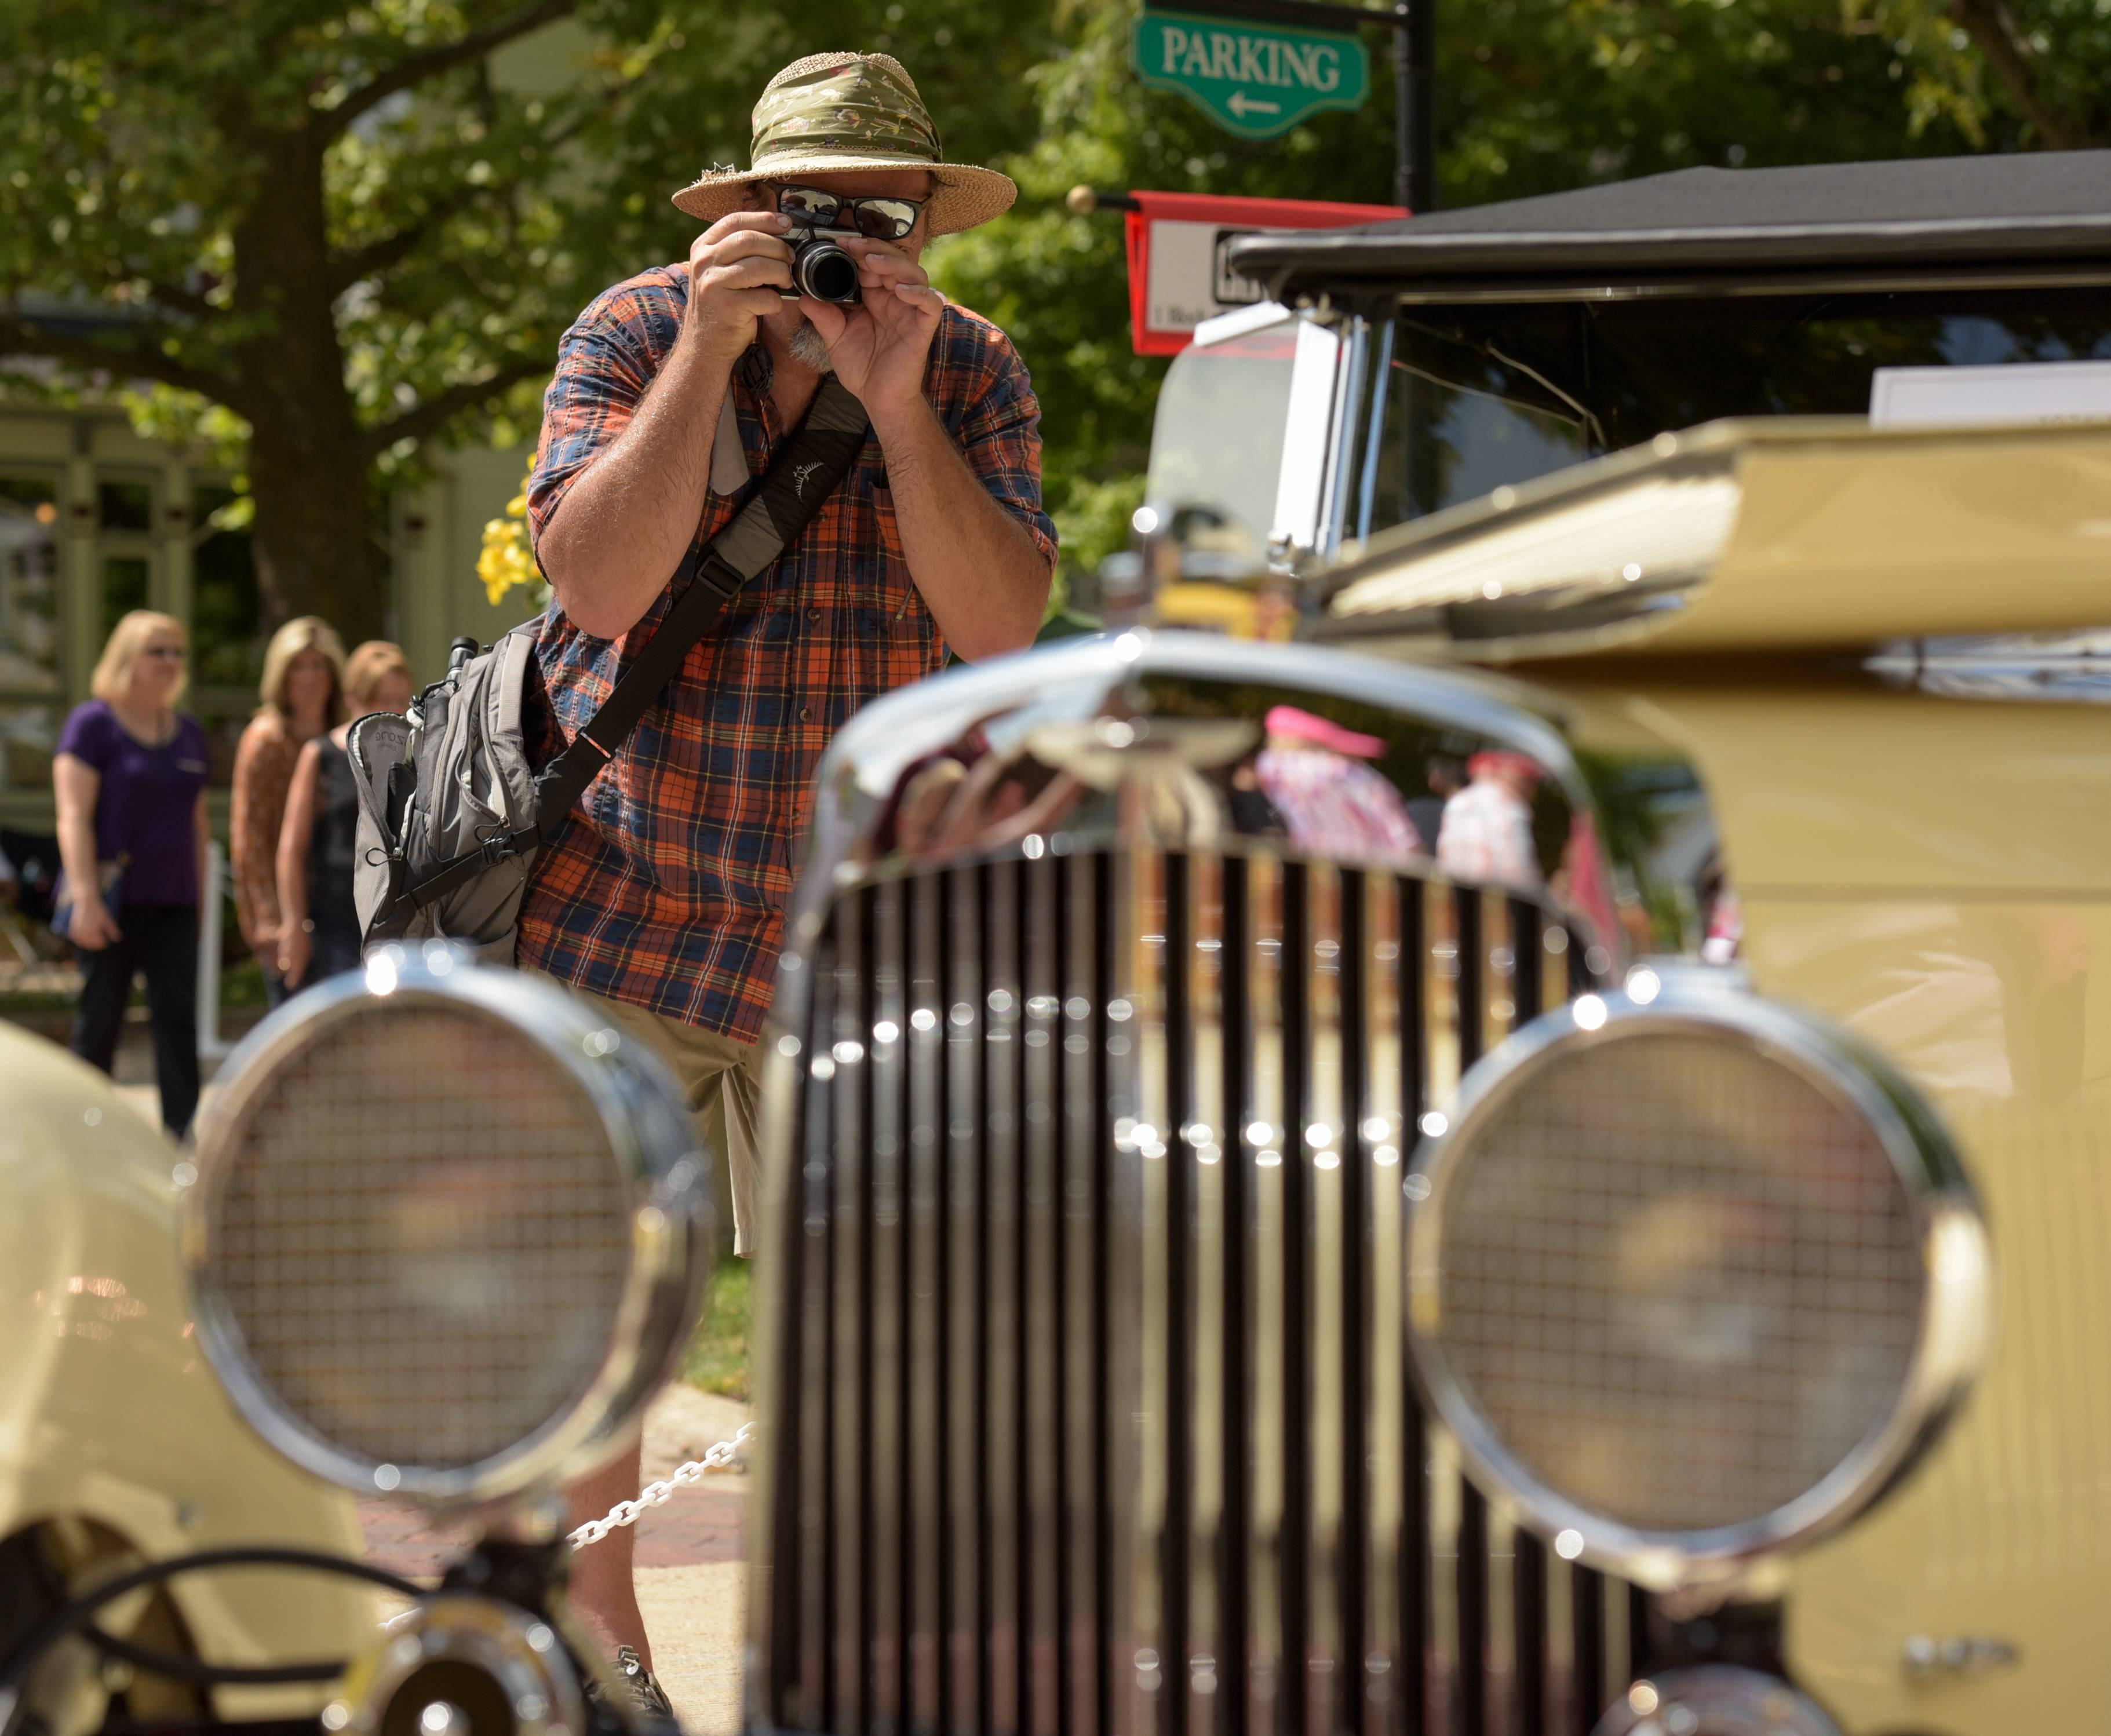 Photography enthusiast Arnie Kalnins, of Batavia photographs a 1934 Aston Martin Mark II Sunday at the annual Concours d'Elegance Car Show in downtown Geneva. Kalnins comes to the show every year.